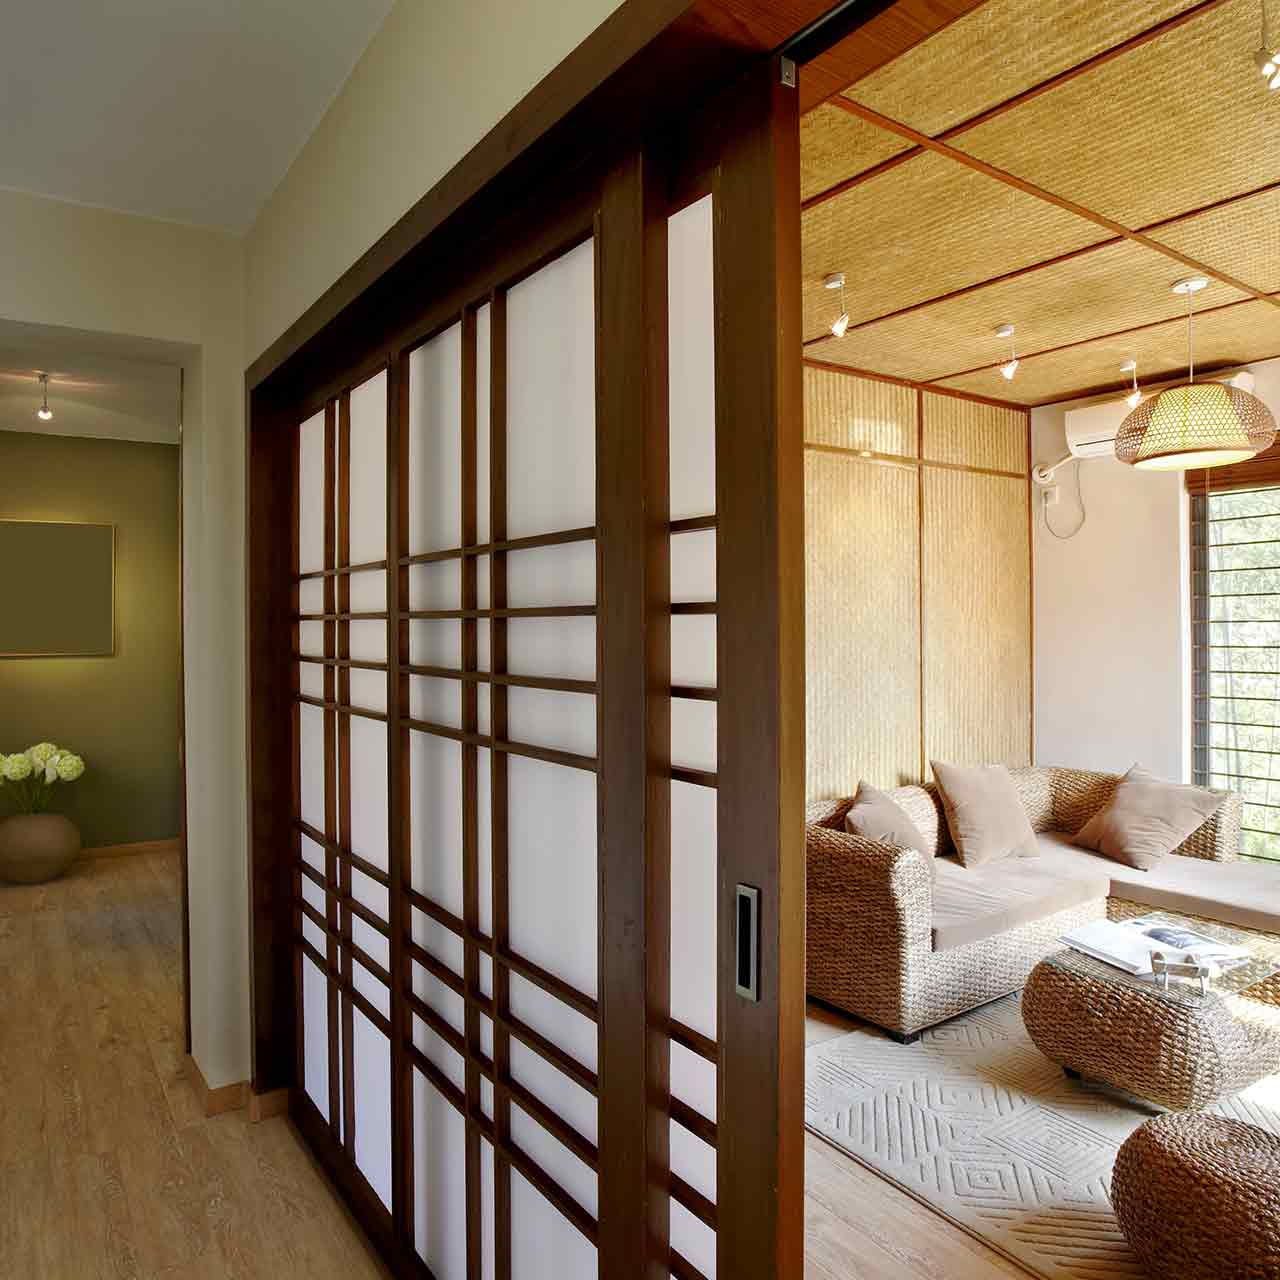 Asian style living room designs are focused on nature and adorned with backdrops of landscapes